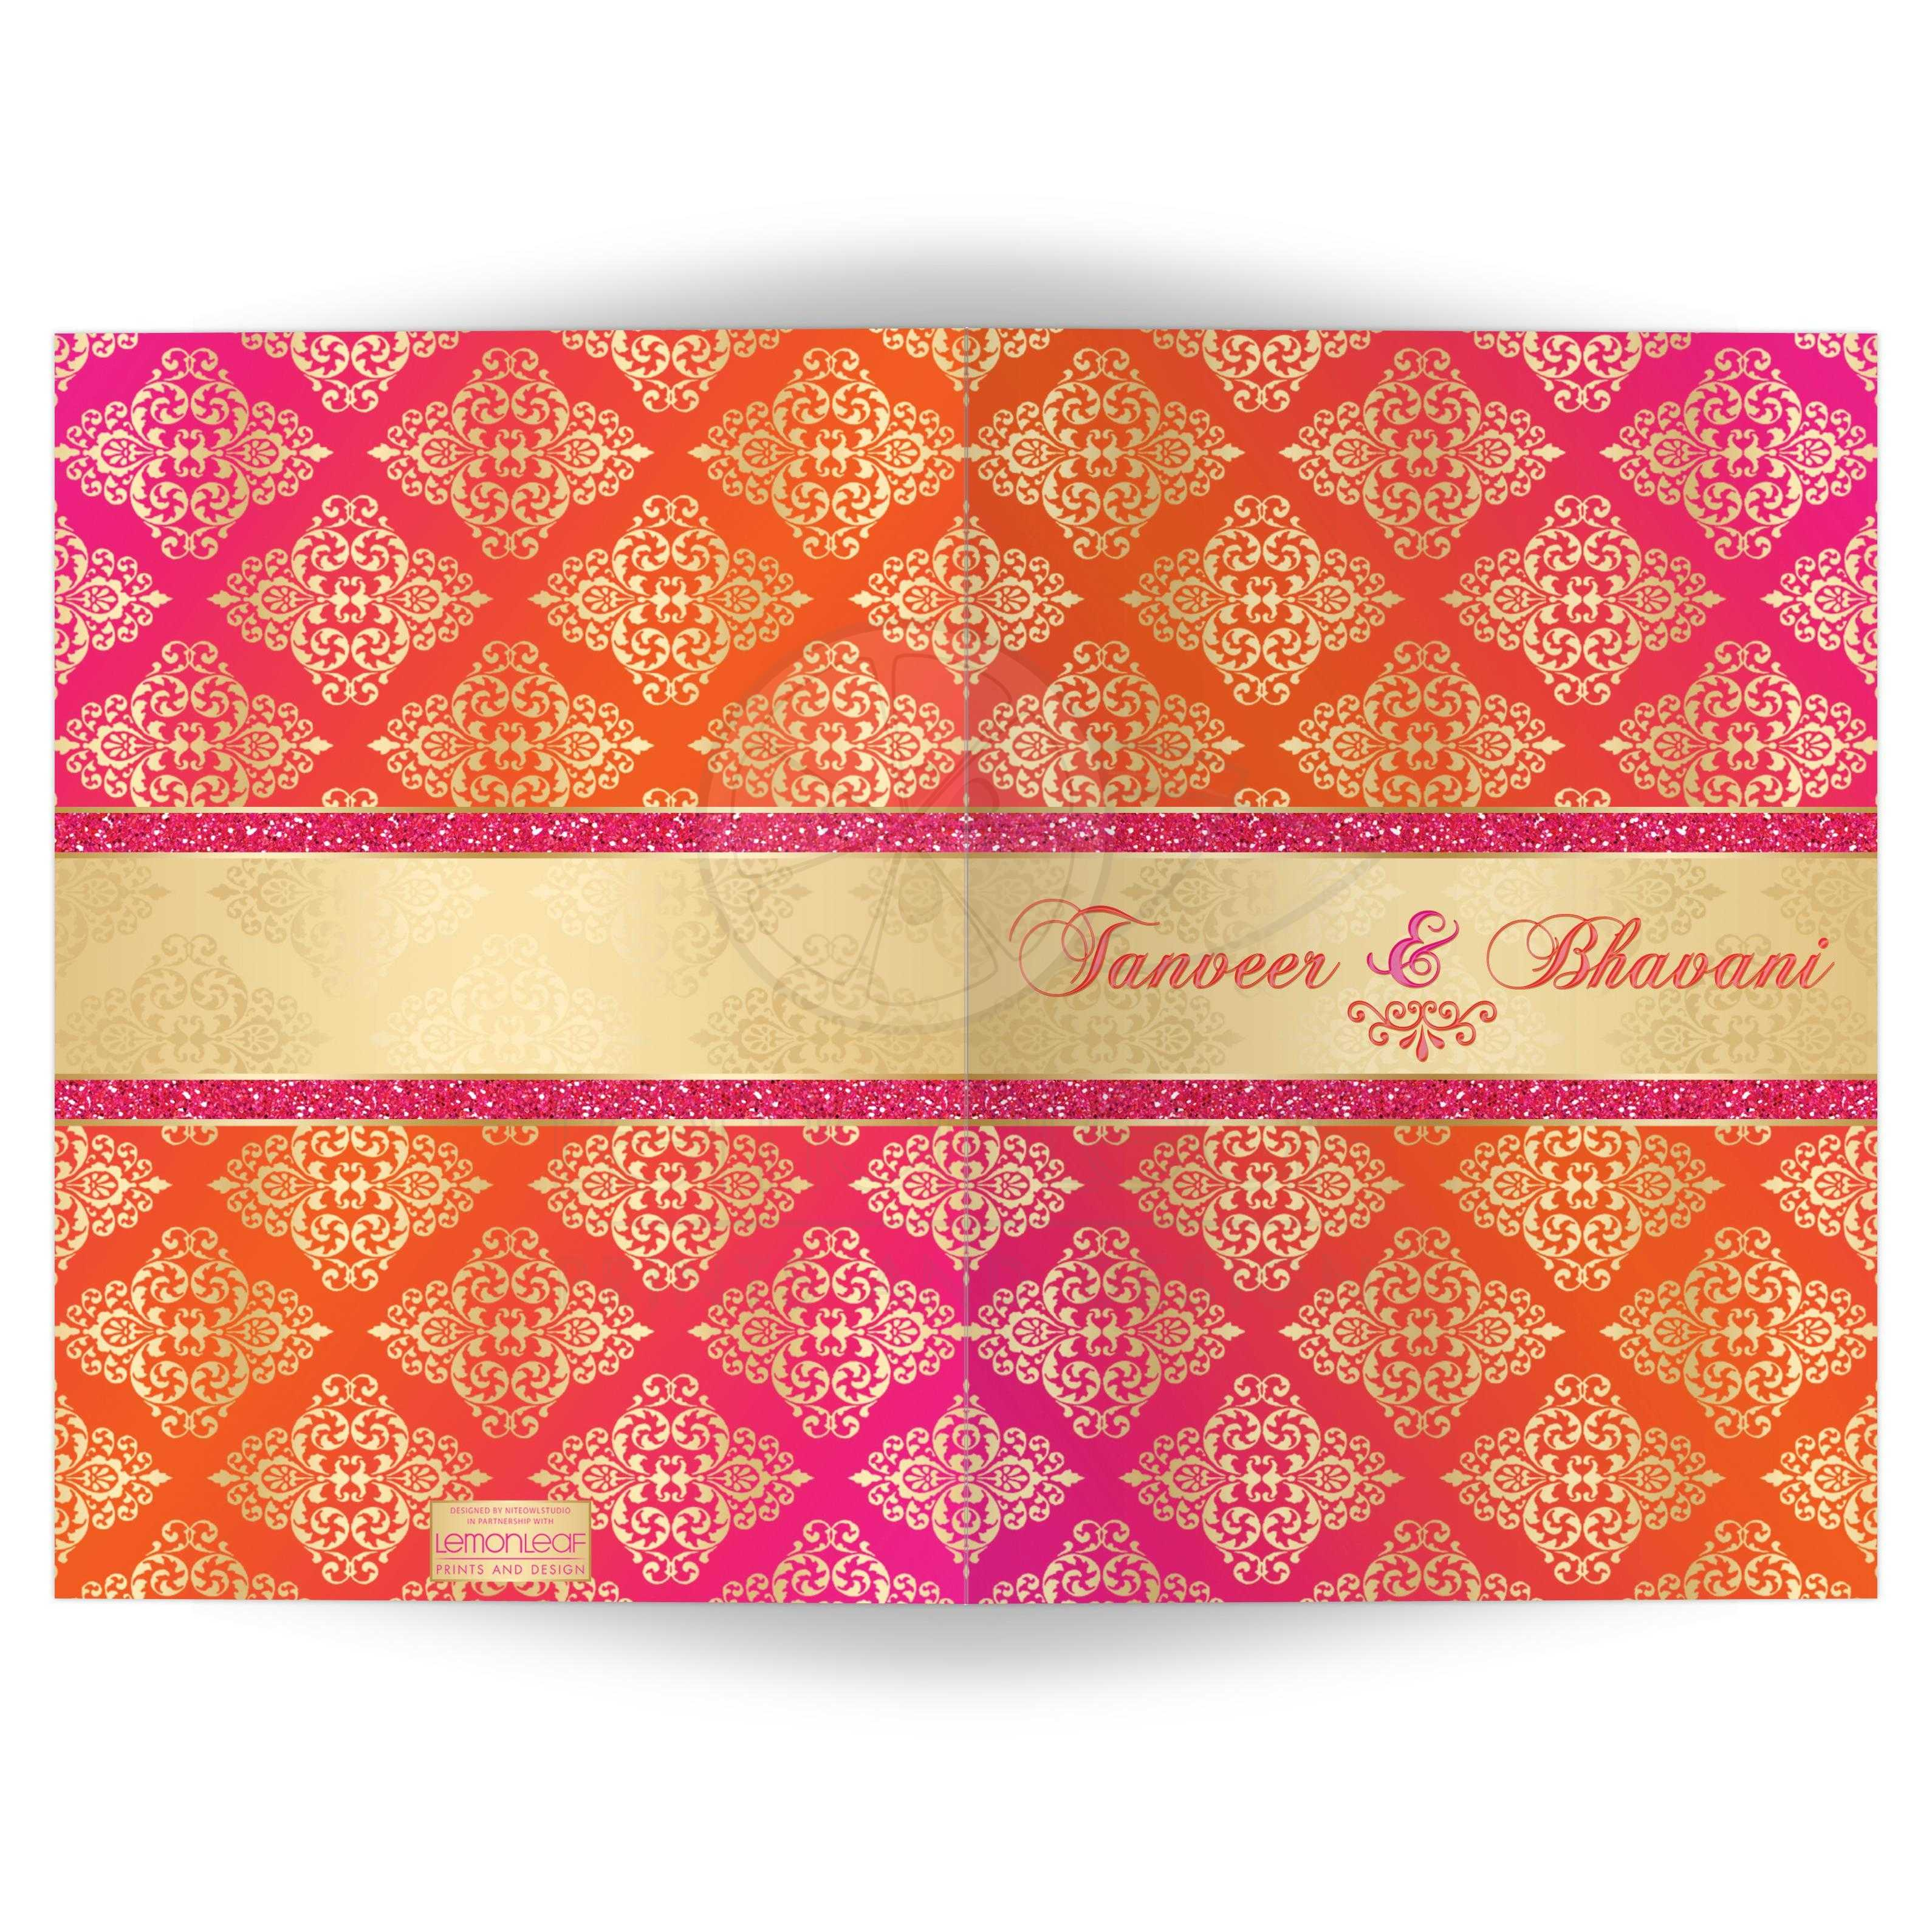 Affordable Indian Or Hindu Wedding Card Invitation In Fuchsia Pink, Orange  And Gold Damask ...